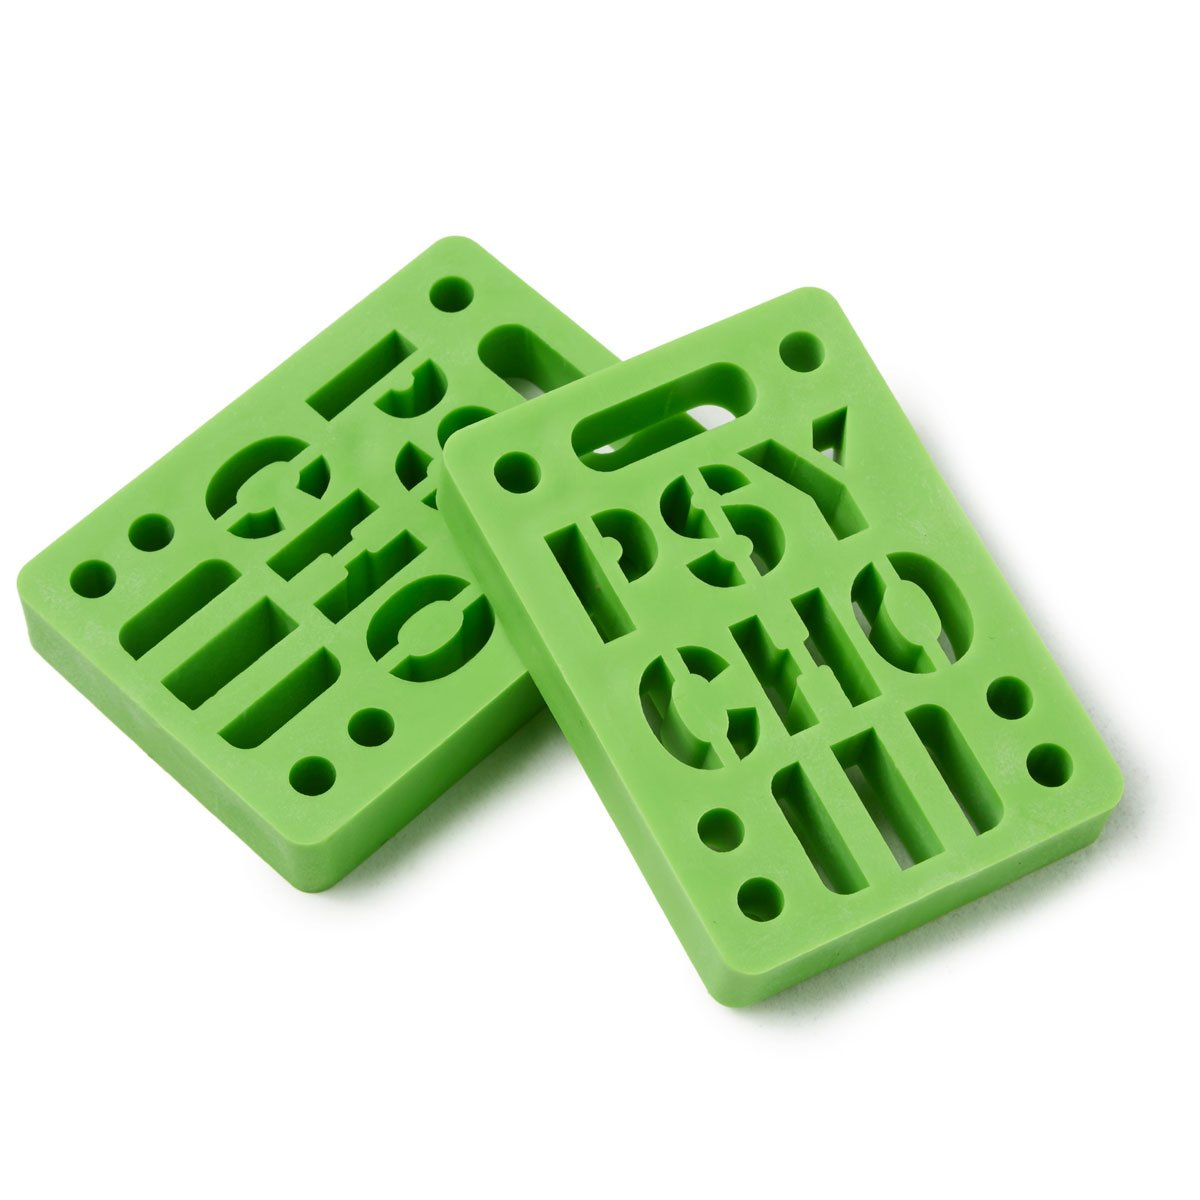 Psycho 2 Pack Risers - Green - 1/2''